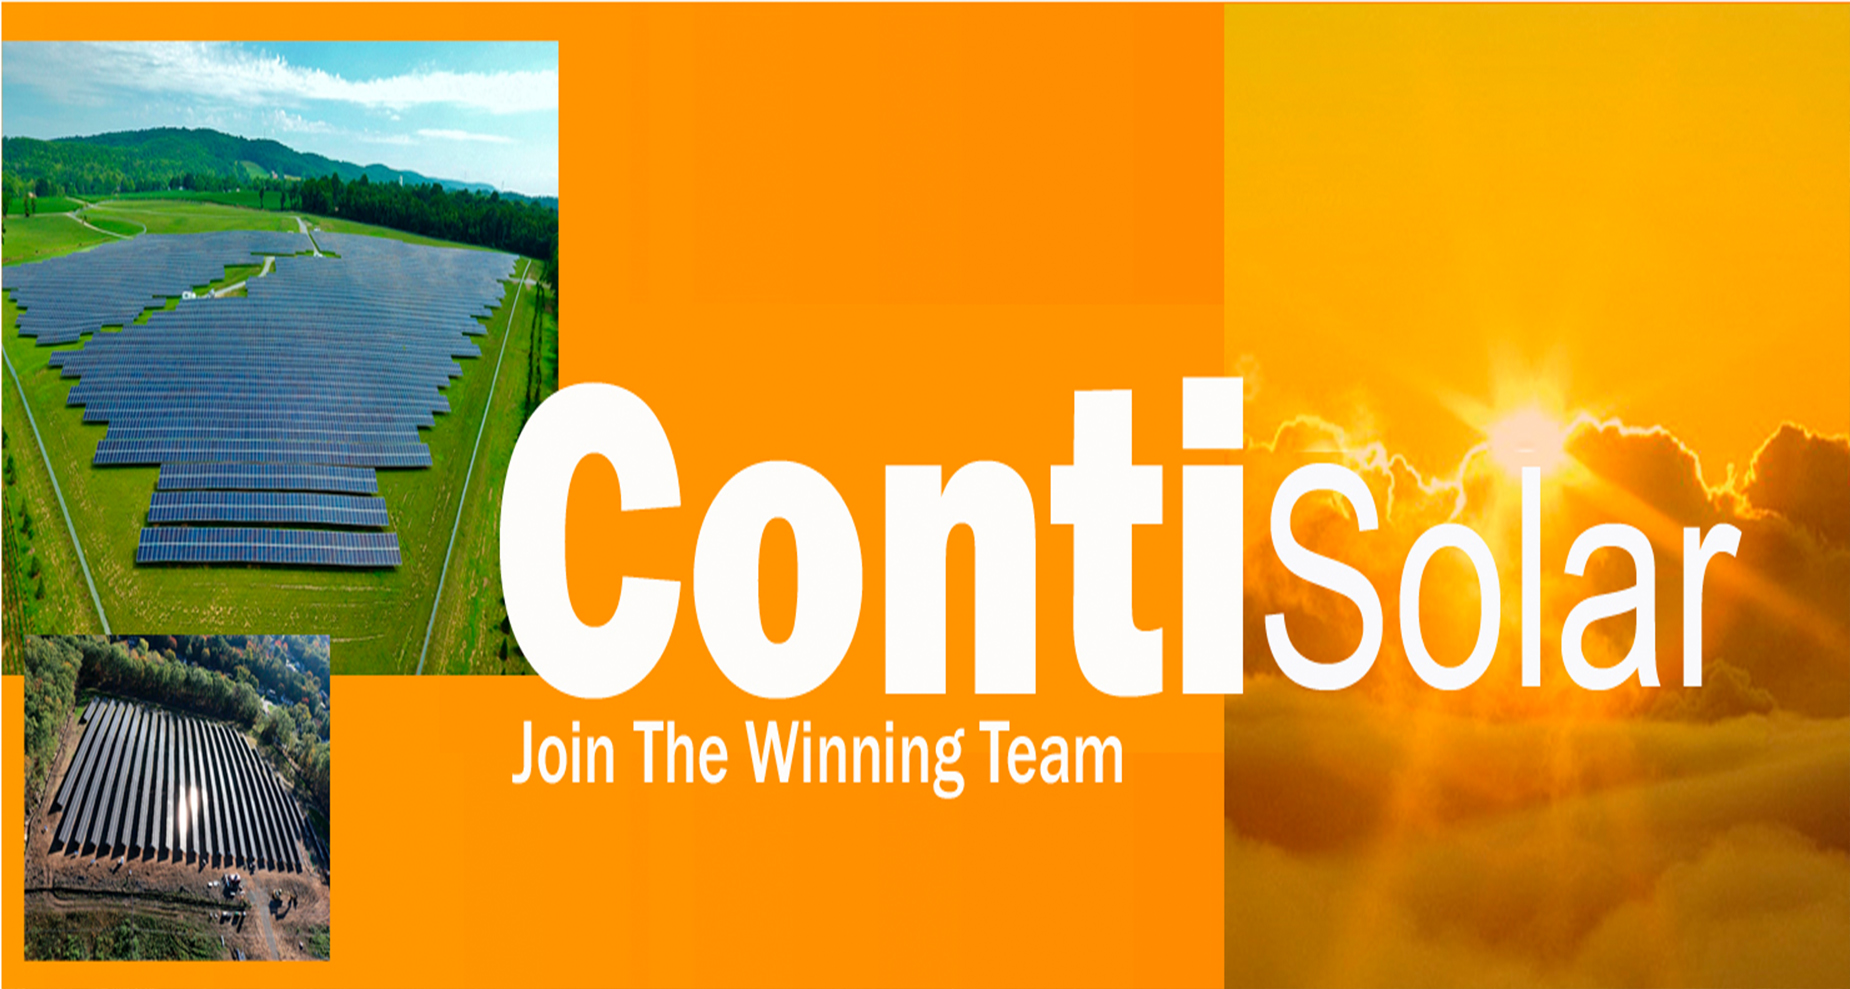 Conti Solar Is Expanding Their Teams in Multiple States